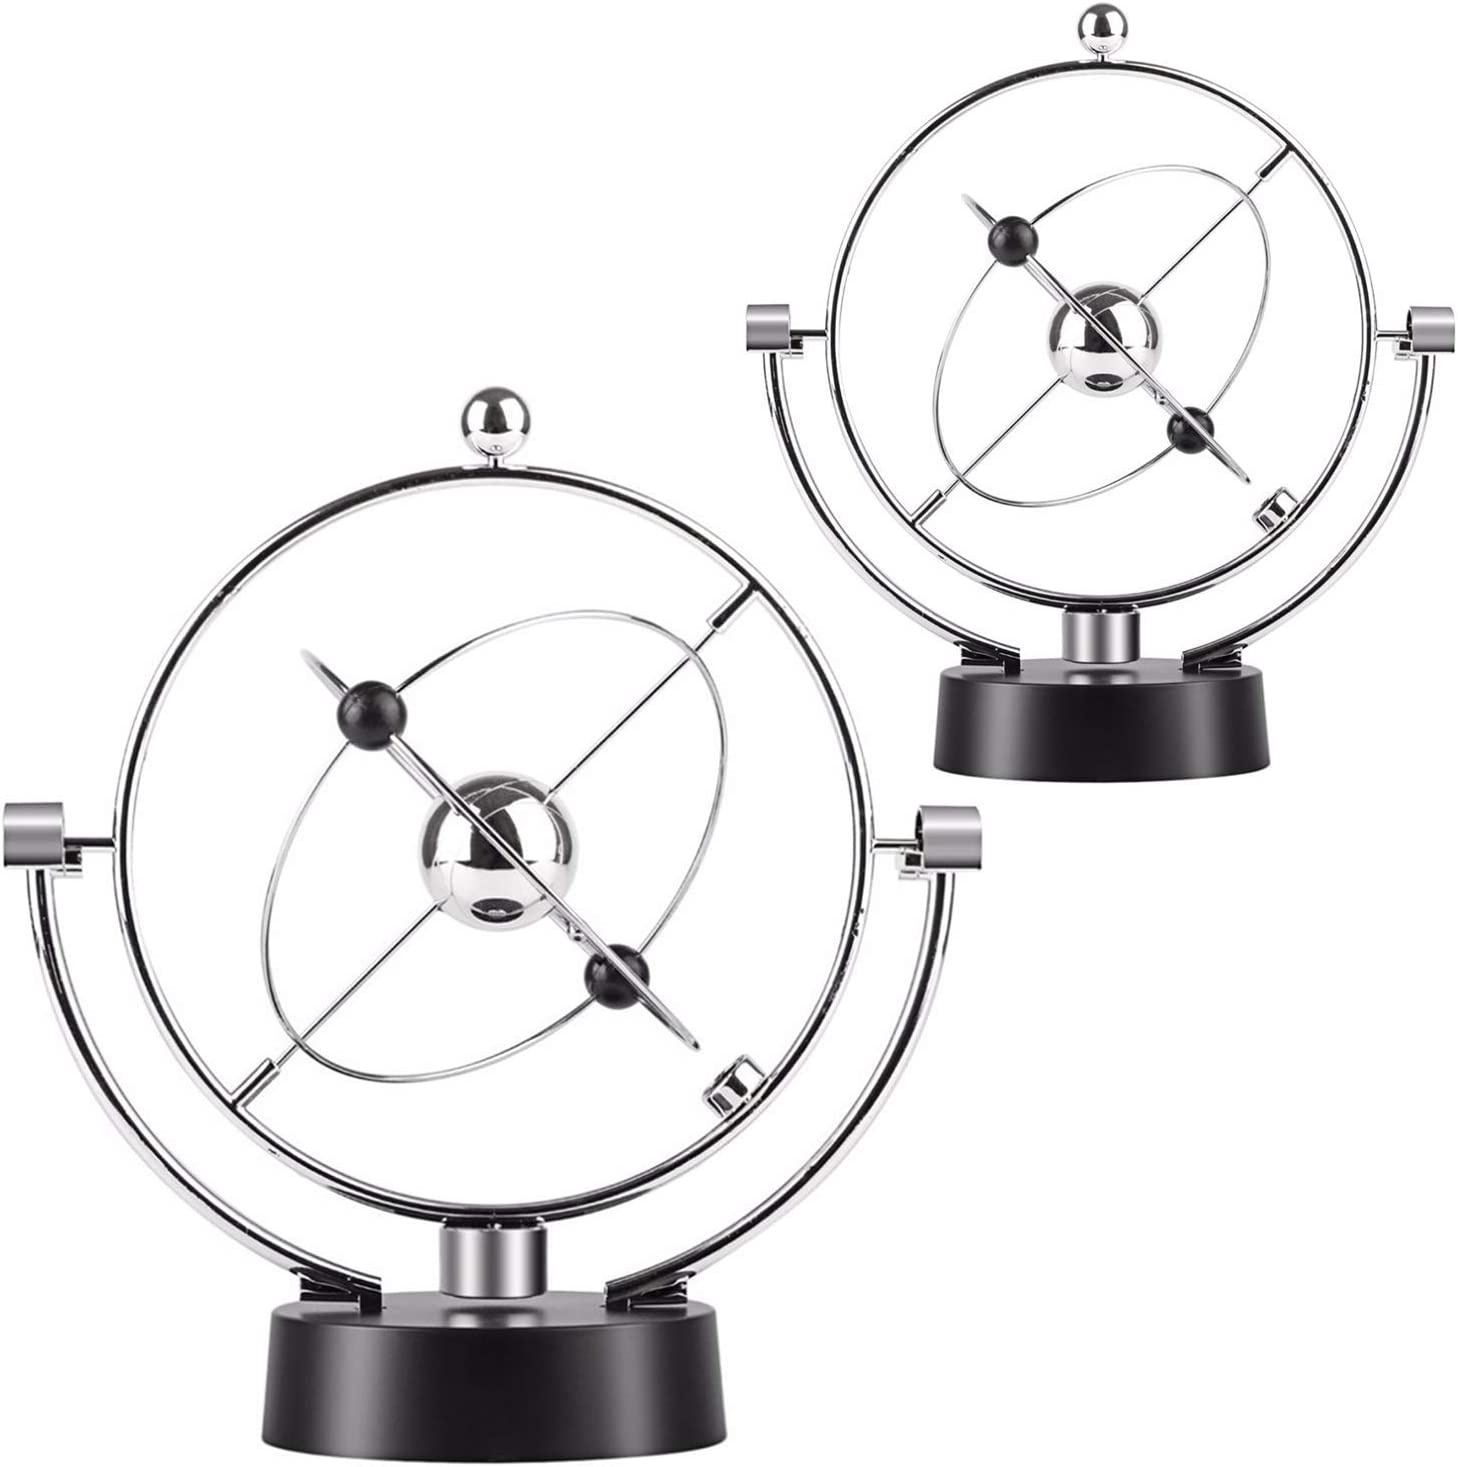 Kicko Kinetic Orbital Perpetual Motion Desk Toy - 2 Pack, 7 Inch - for Home, School and Office Decoration, Learning and Education, Party Favors - 7 Inches